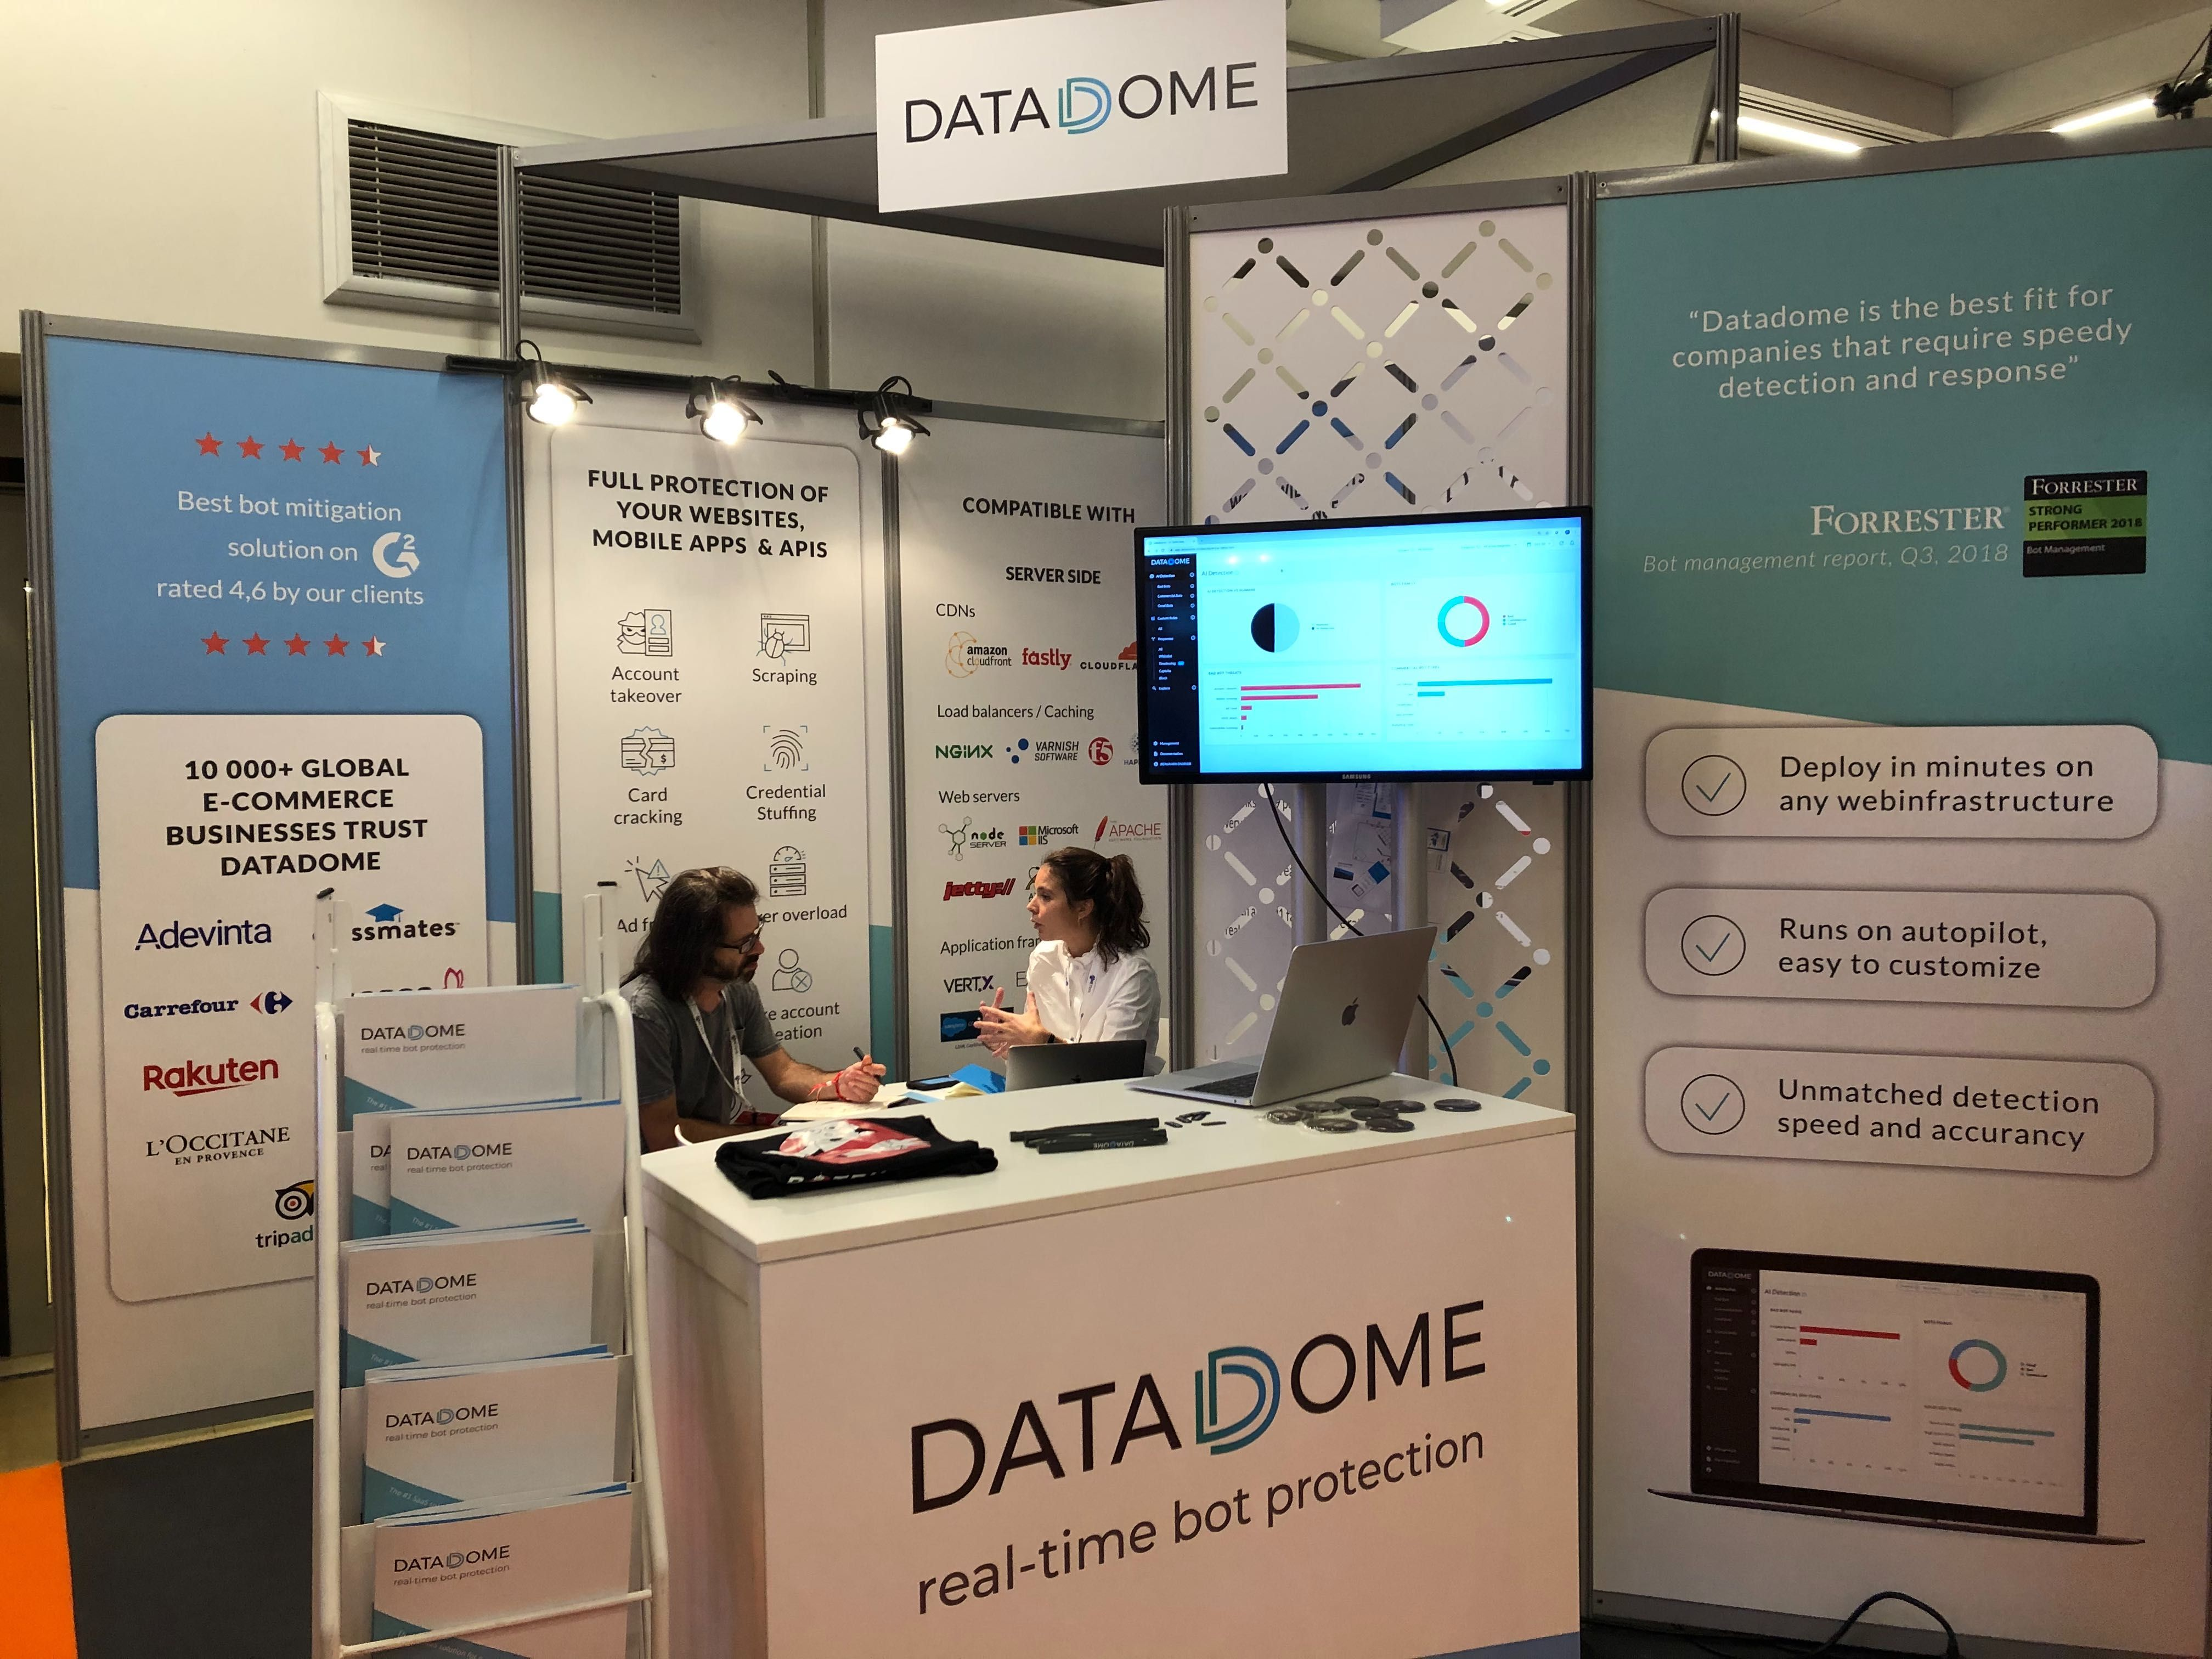 DataDome launches enhanced online fraud and bot management service - SiliconANGLE